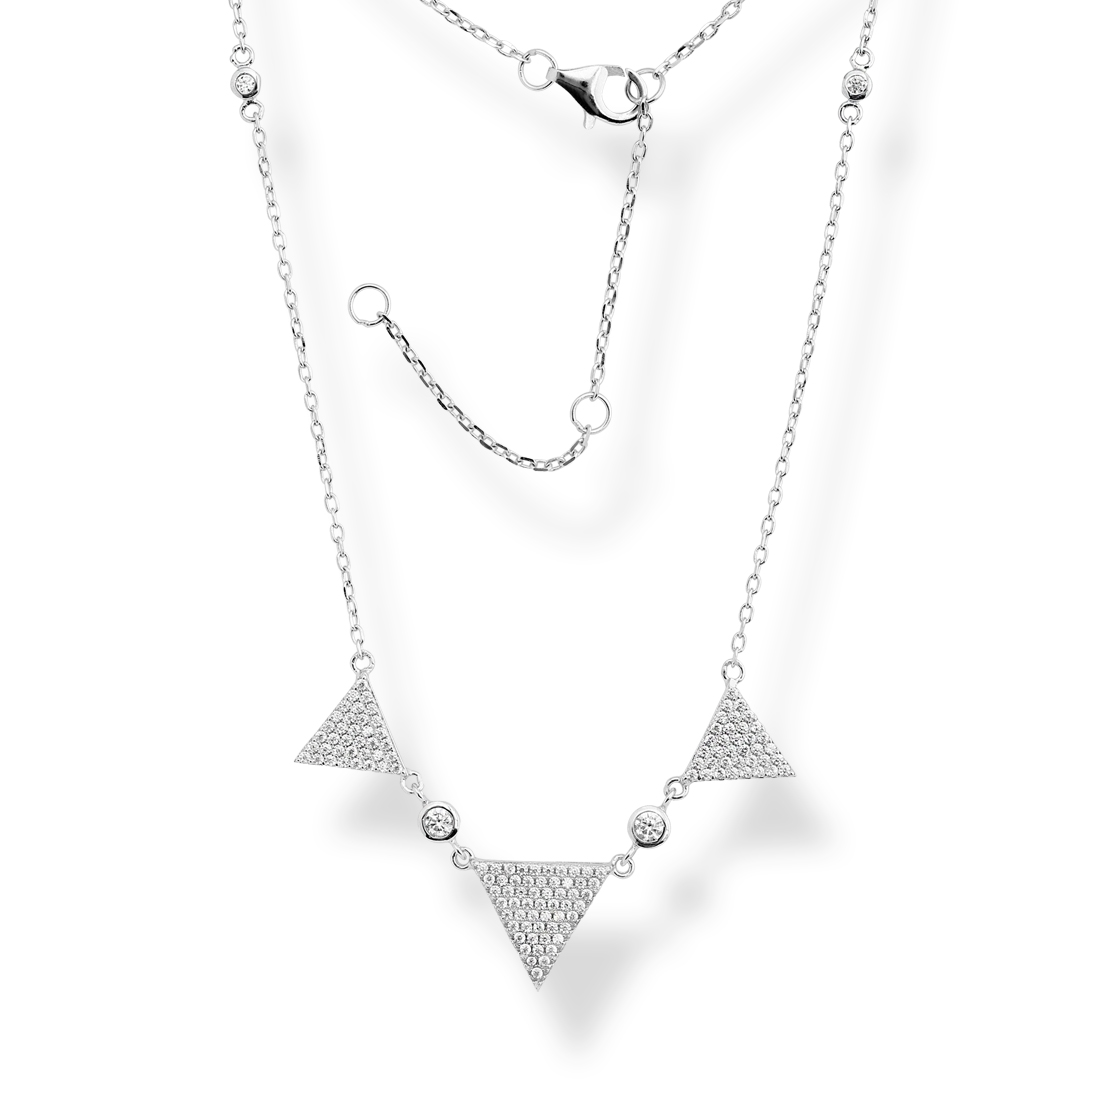 Viking Silver Necklace - High Street Jewelry